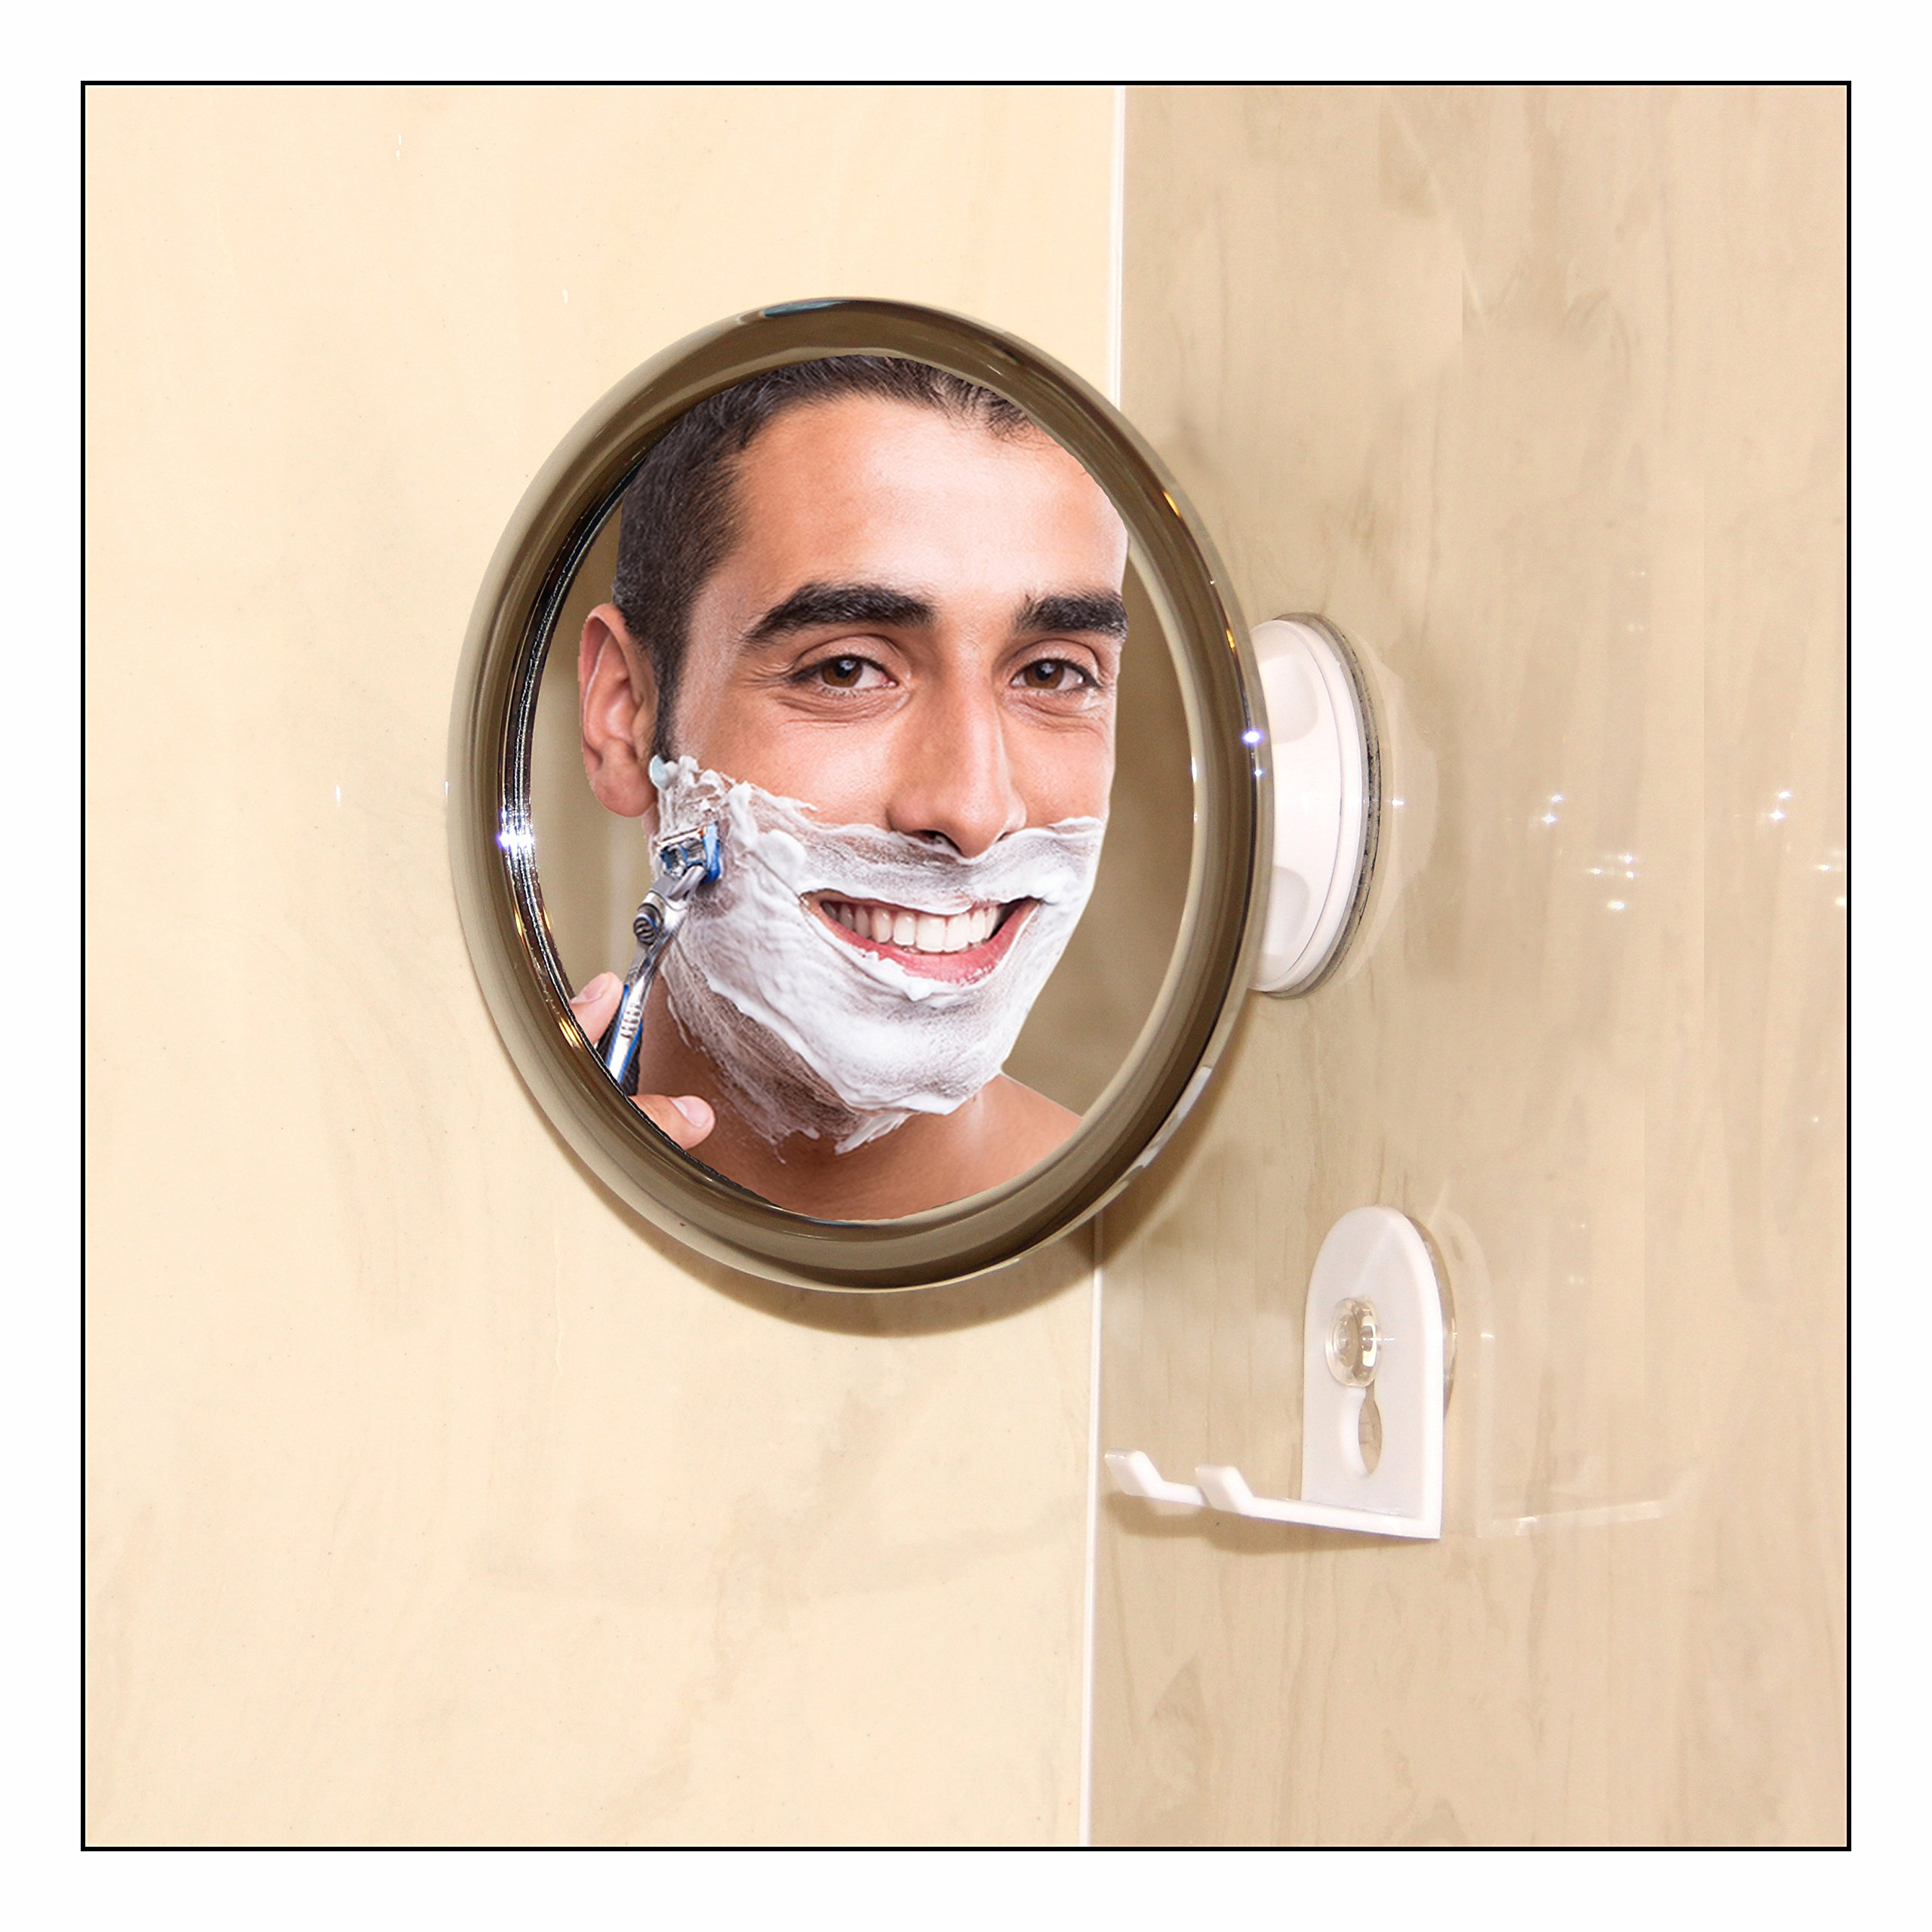 Upper West Collection No Fog Shower Mirror with Rotating, Locking Suction; Bonus Separate Razor Holder   Adjustable Arm for Easy Positioning   Best Personal Mirror for Shaving Available   The by Upper West Collection (Image #7)